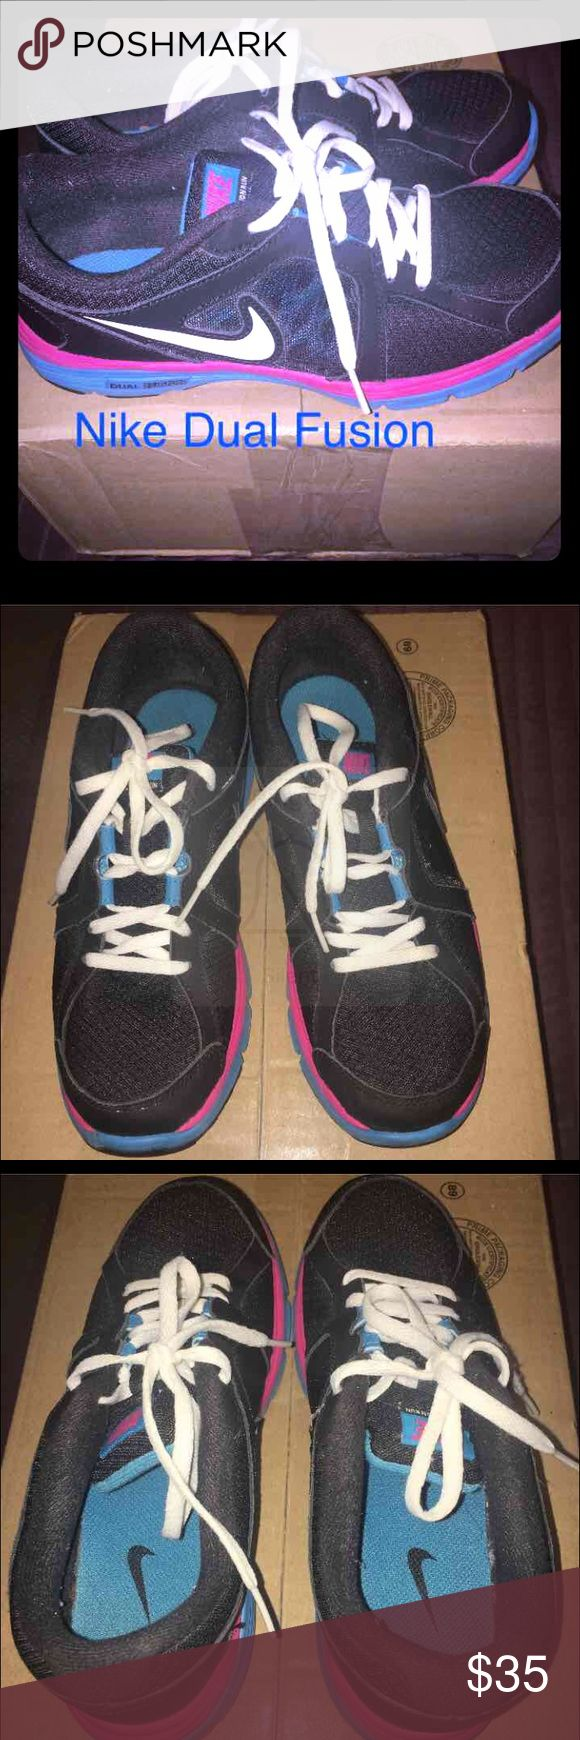 Nike Dual fusion sneakers Gently used. Size youth 5.5 is a women's 6 1/2 to 7. Without original box. Nike Shoes Sneakers